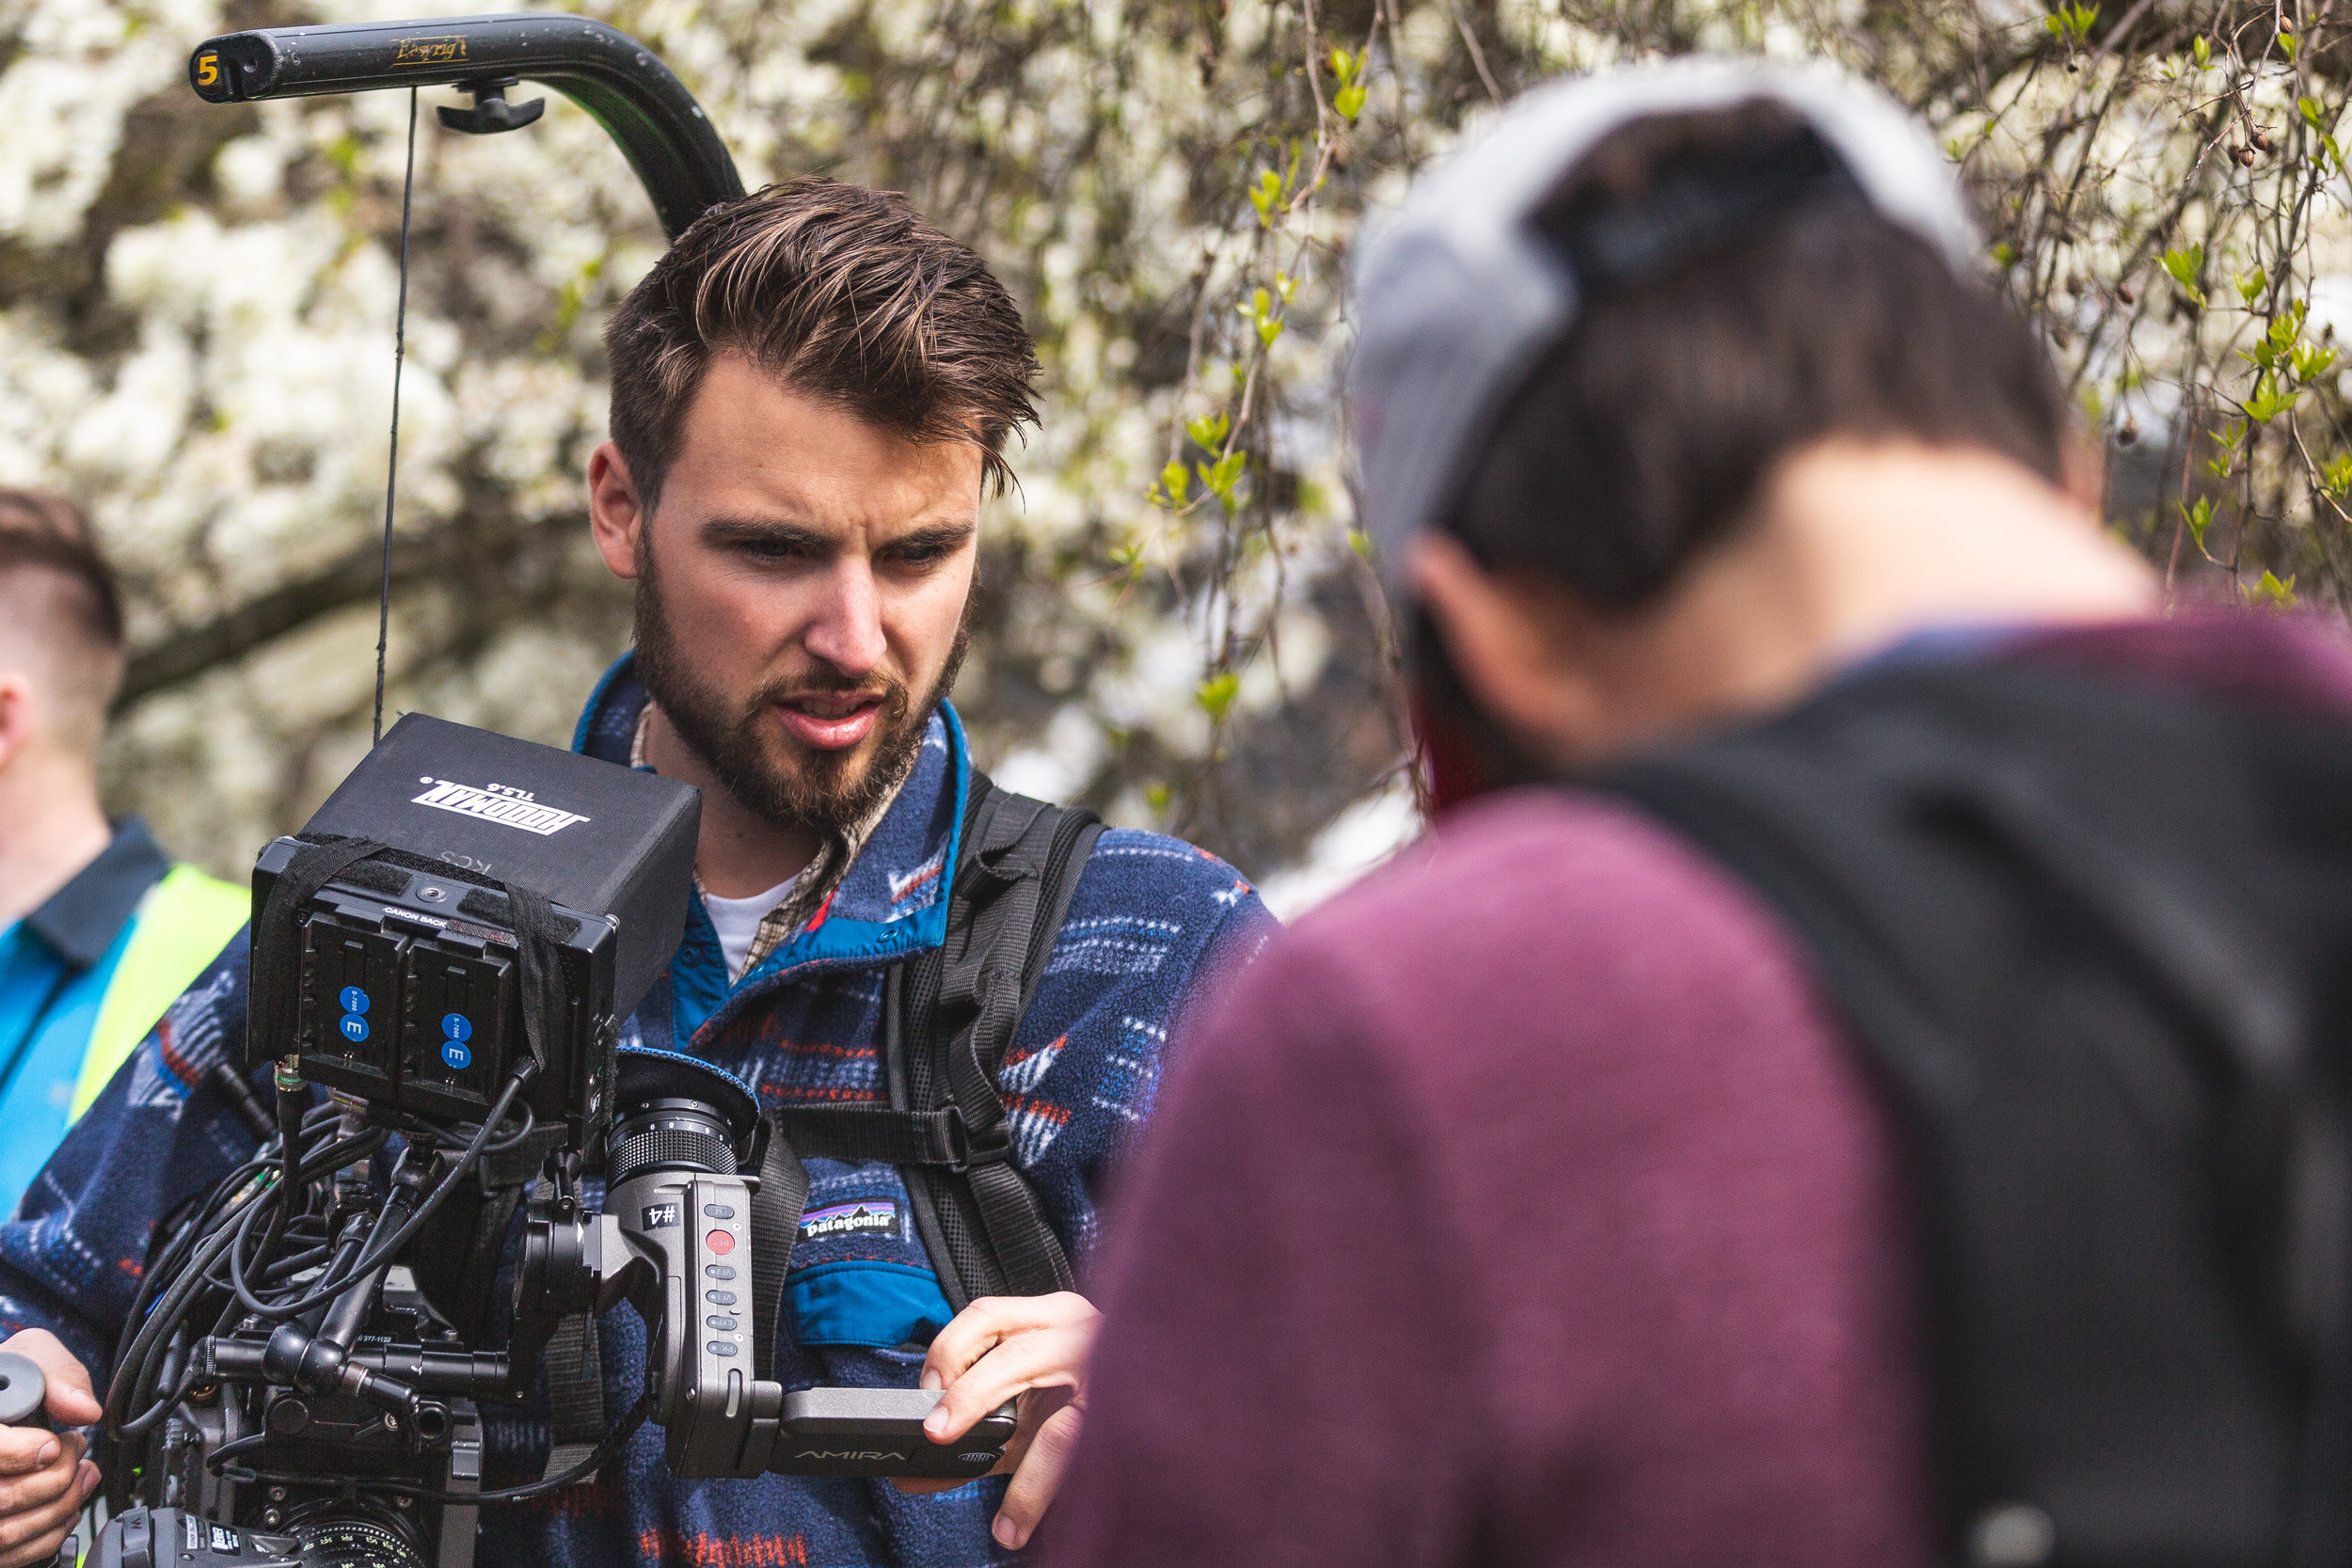 Woodwalk Will Anderson-Beck camera operating Amazon commercial Seattle